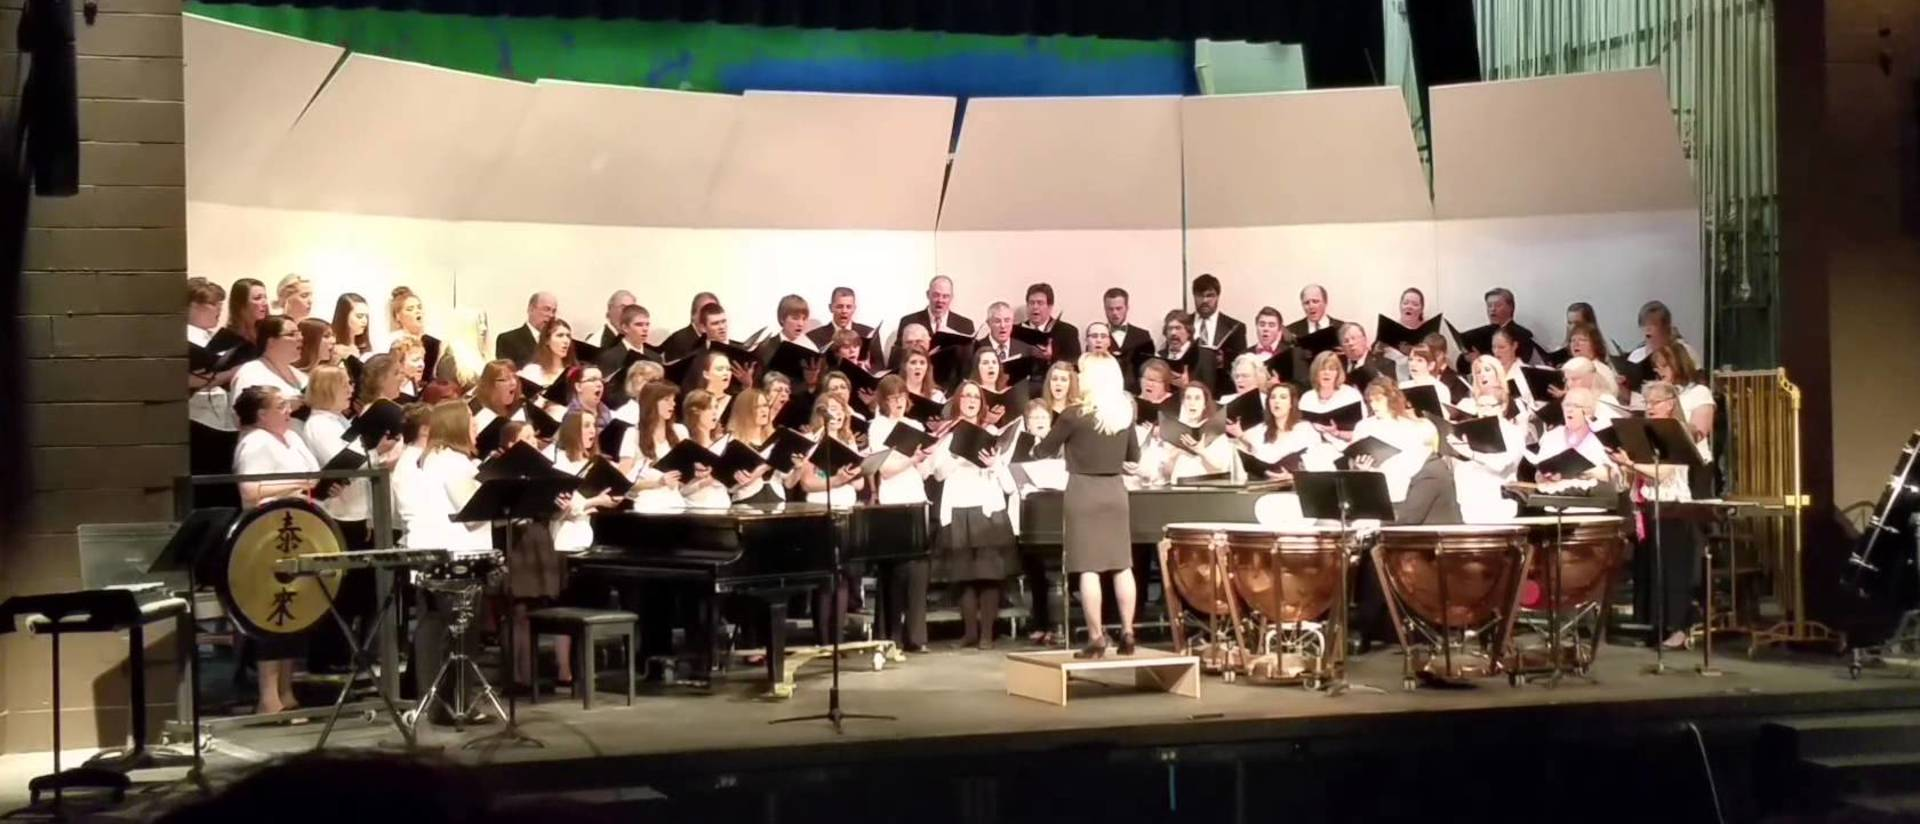 Red Cedar Choir concert